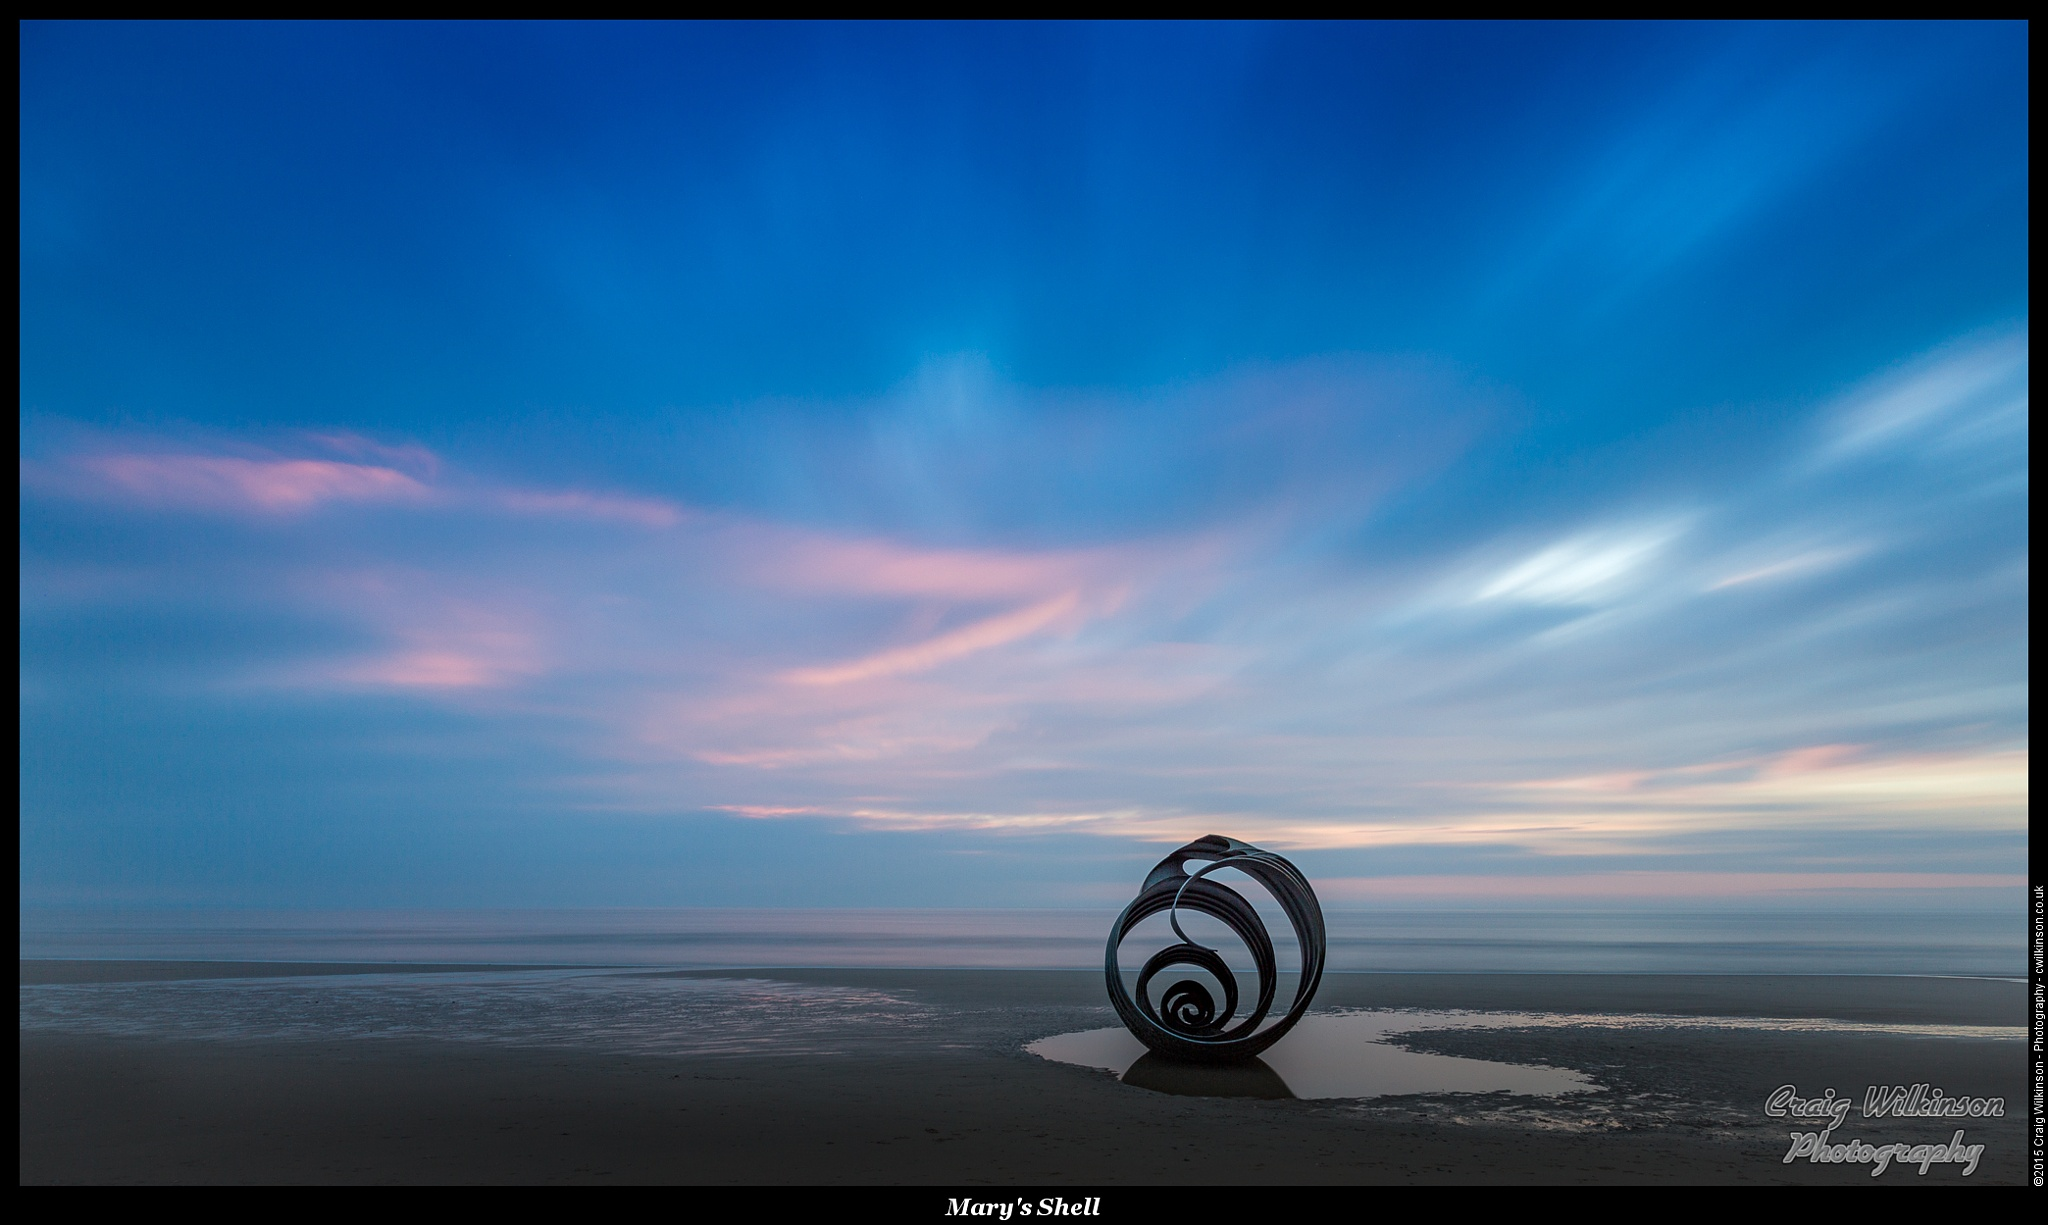 Mary's Shell by Craig Wilkinson